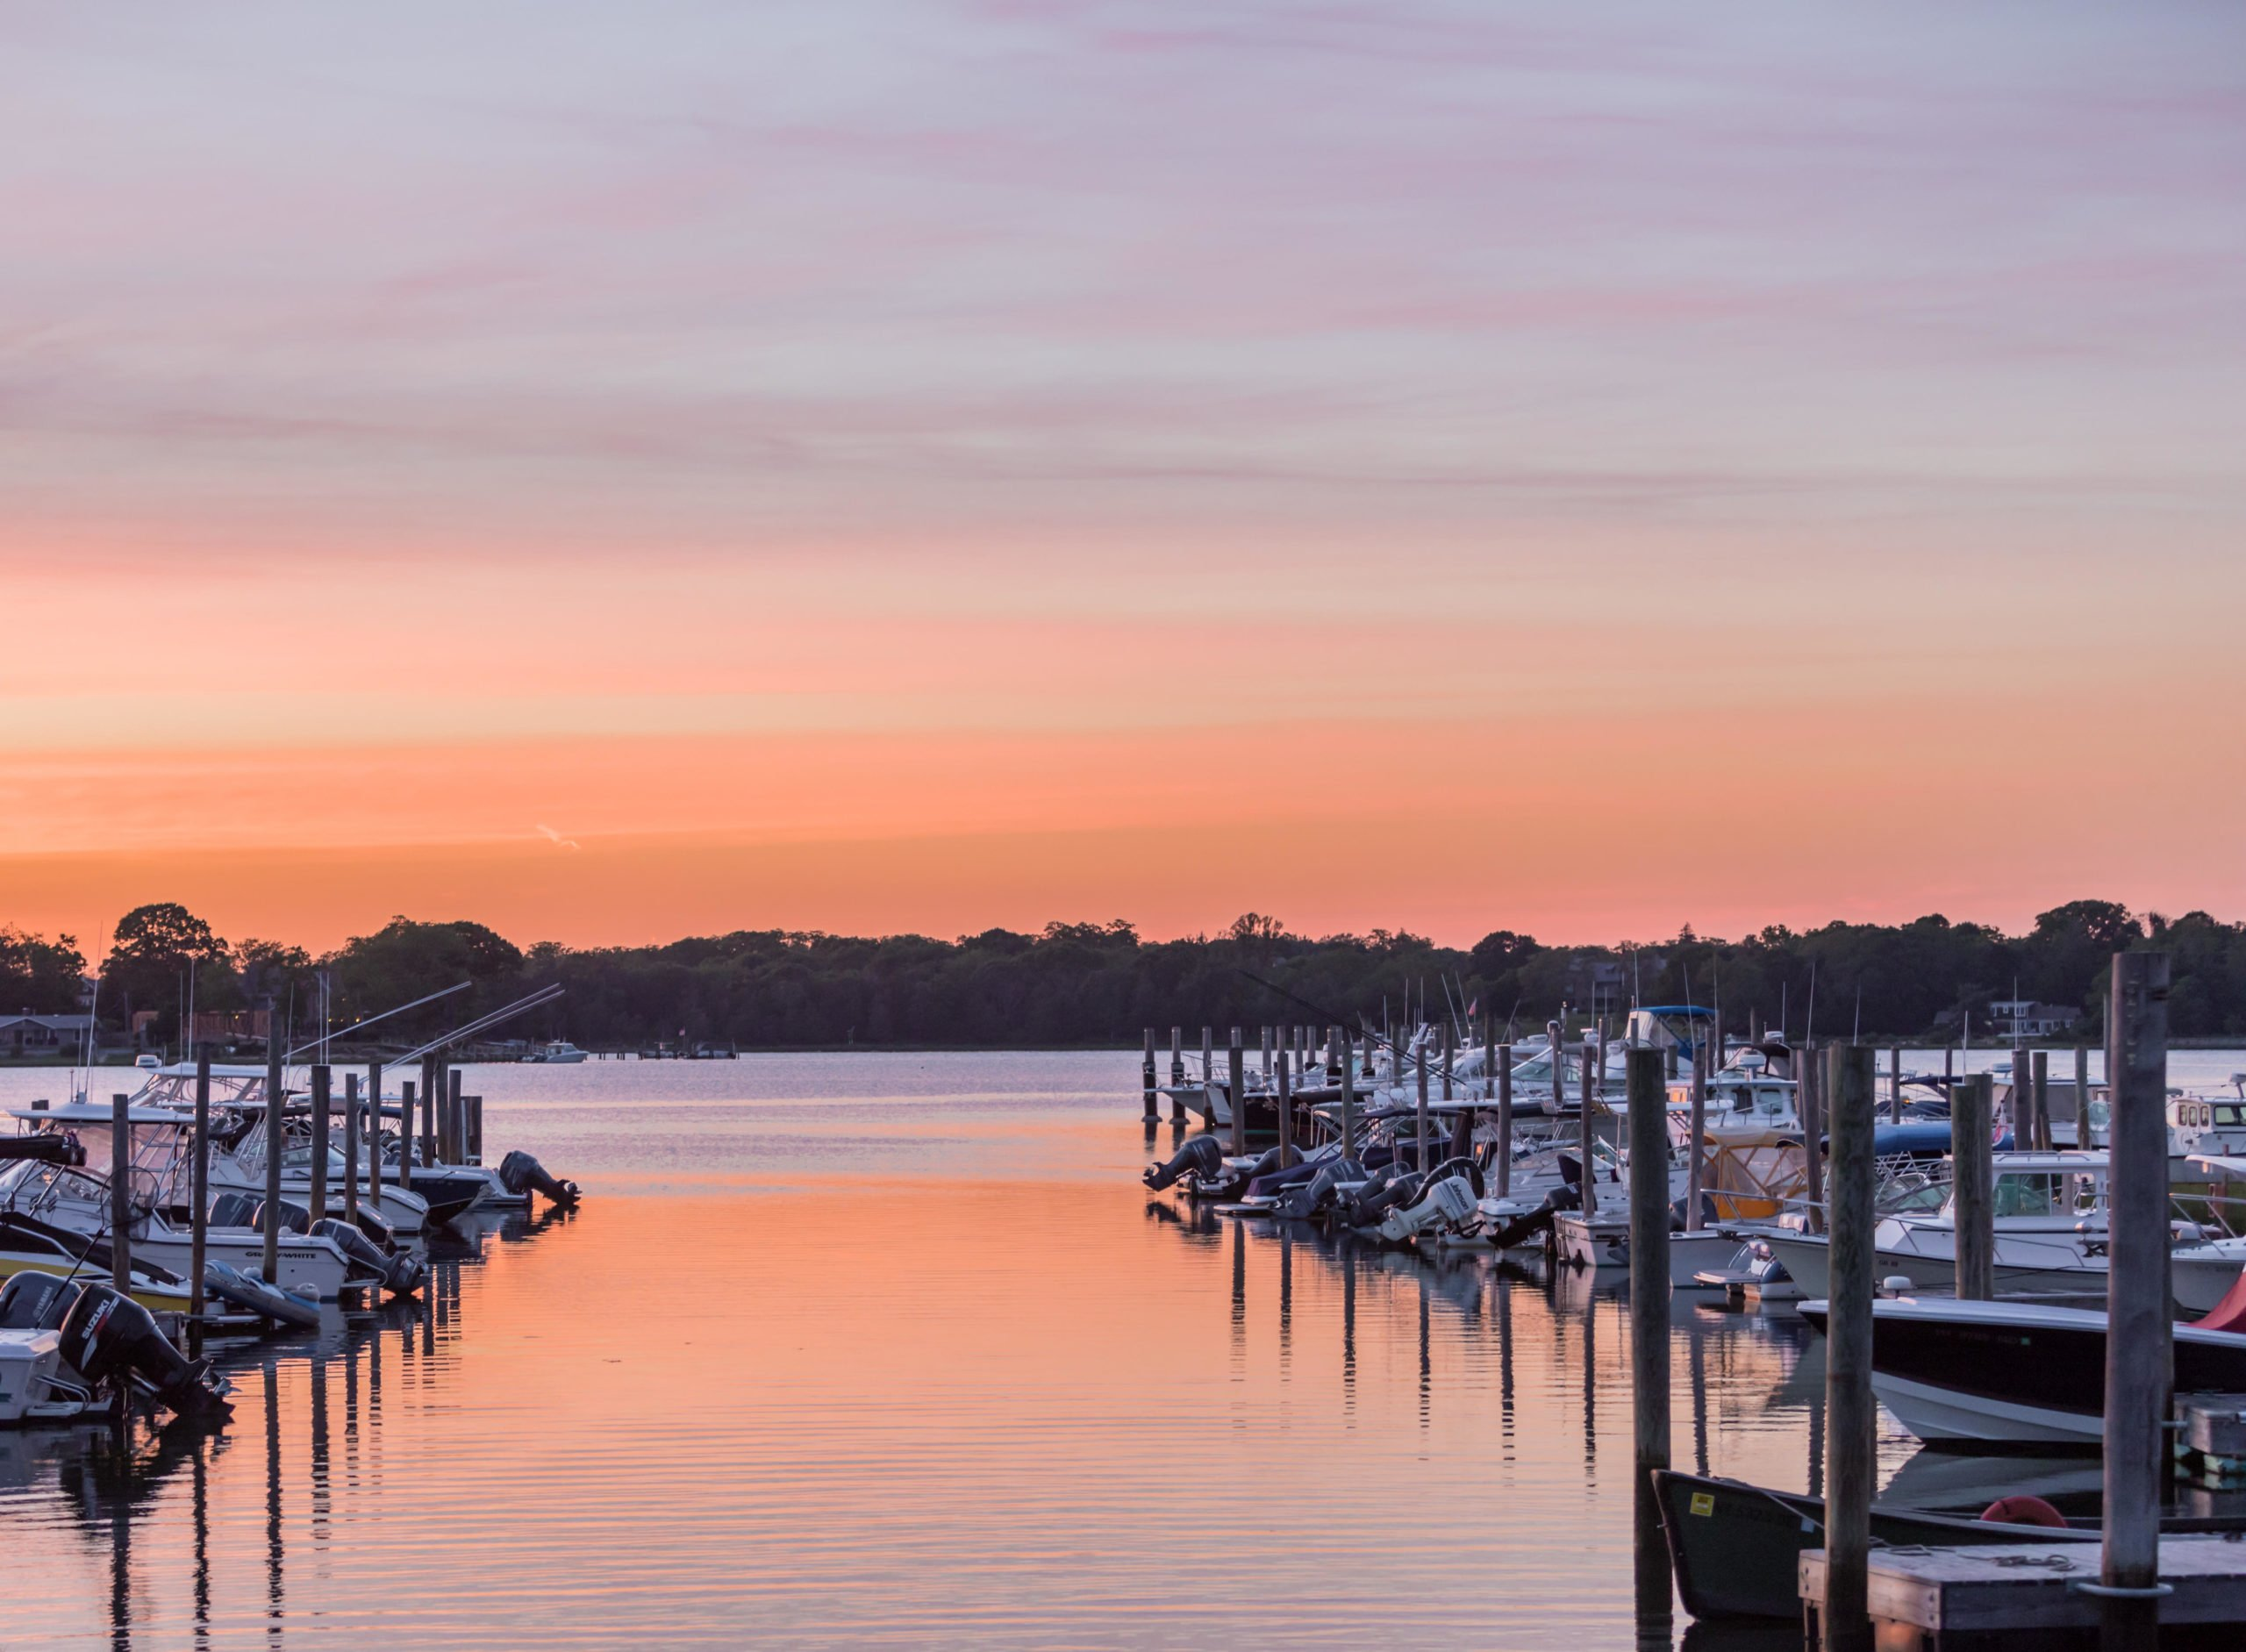 Sag Harbor at Sunset is the perfect end to a perfect day of sailing.